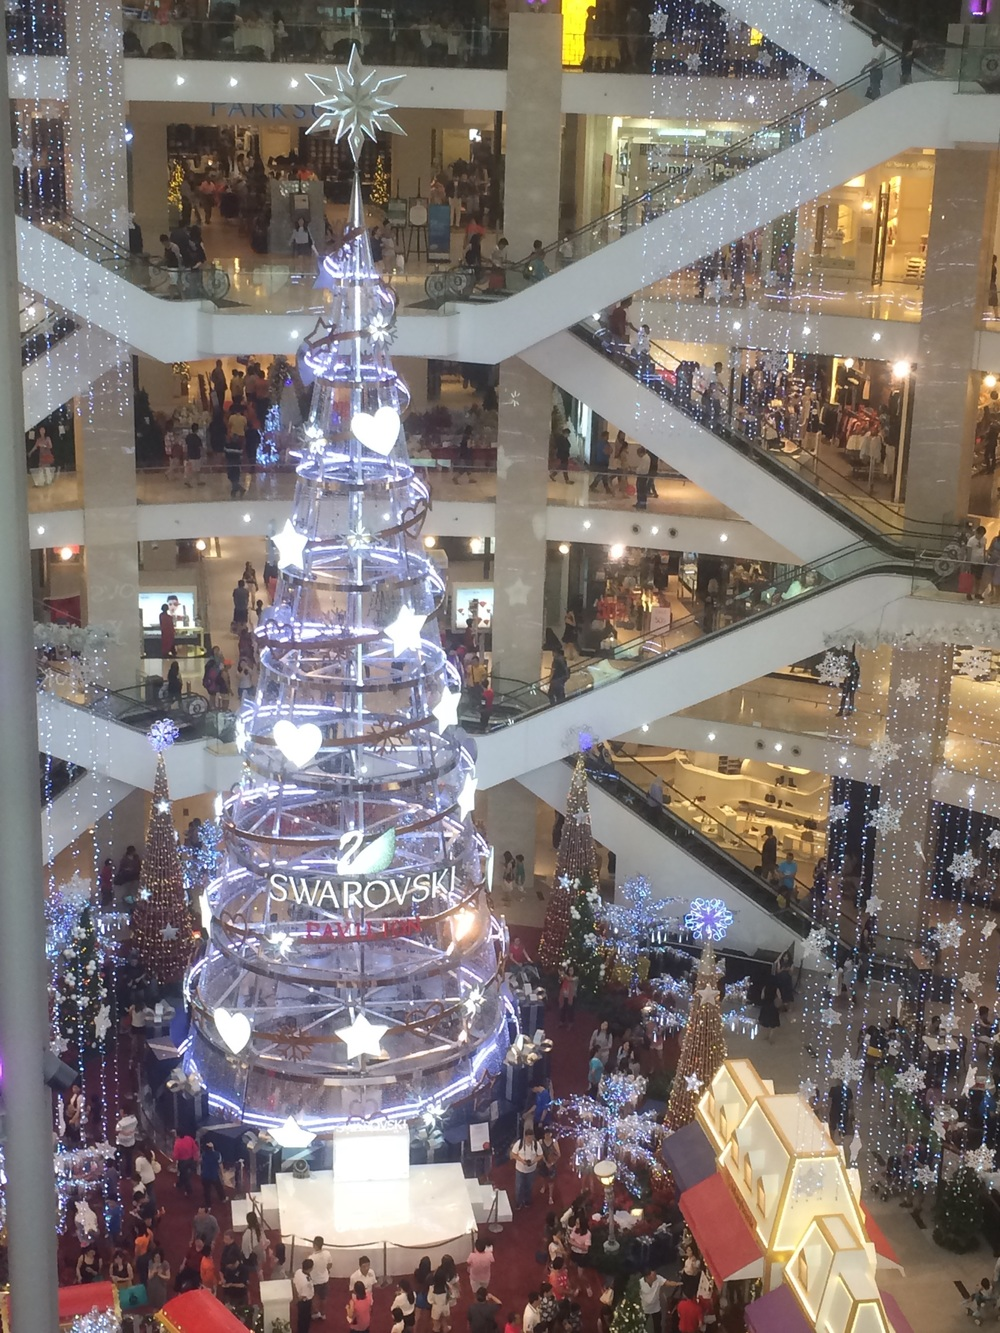 Largest Swarvosky Christmas tree in Asia!